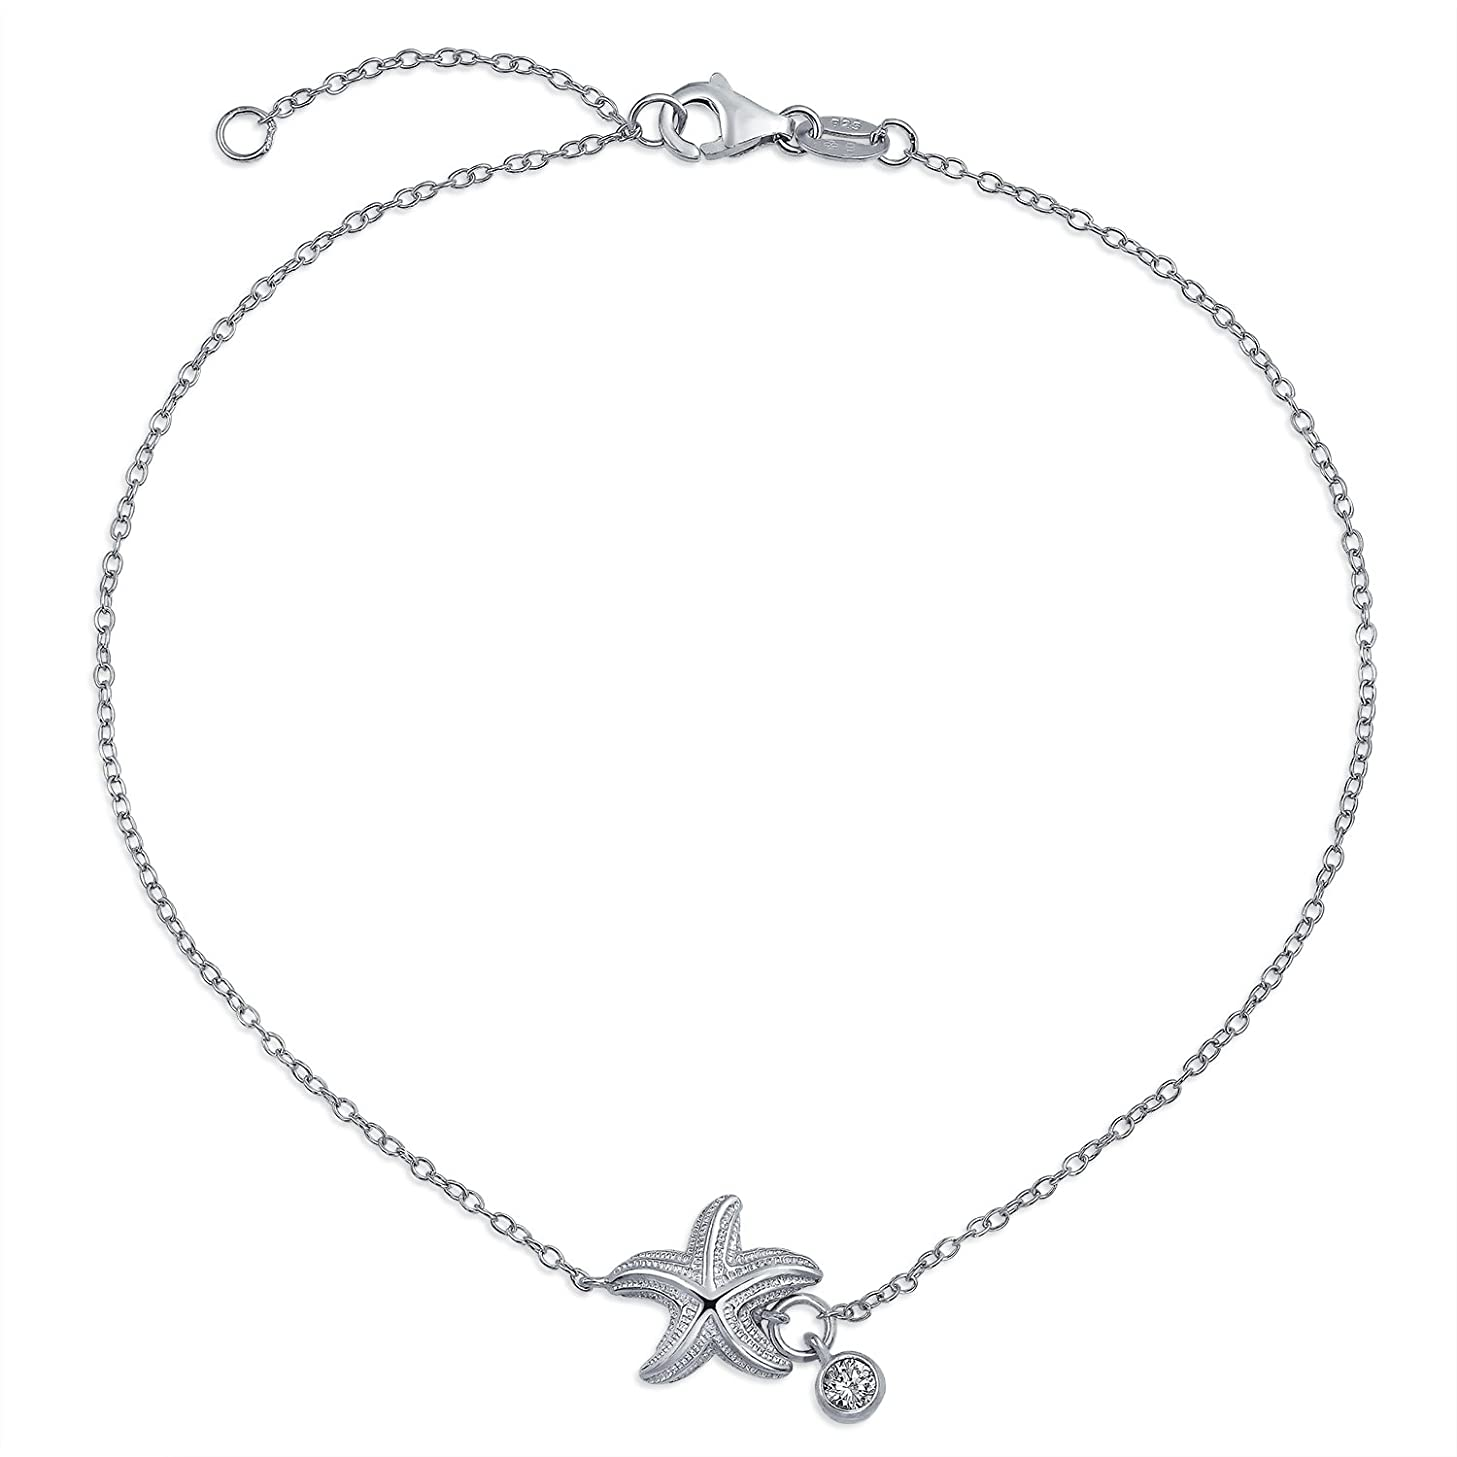 Nautical Starfish Sea Life CZ Accent Anklet Ankle Bracelet 925 Sterling Silver Adjustable 9 to 10 Inch Extender